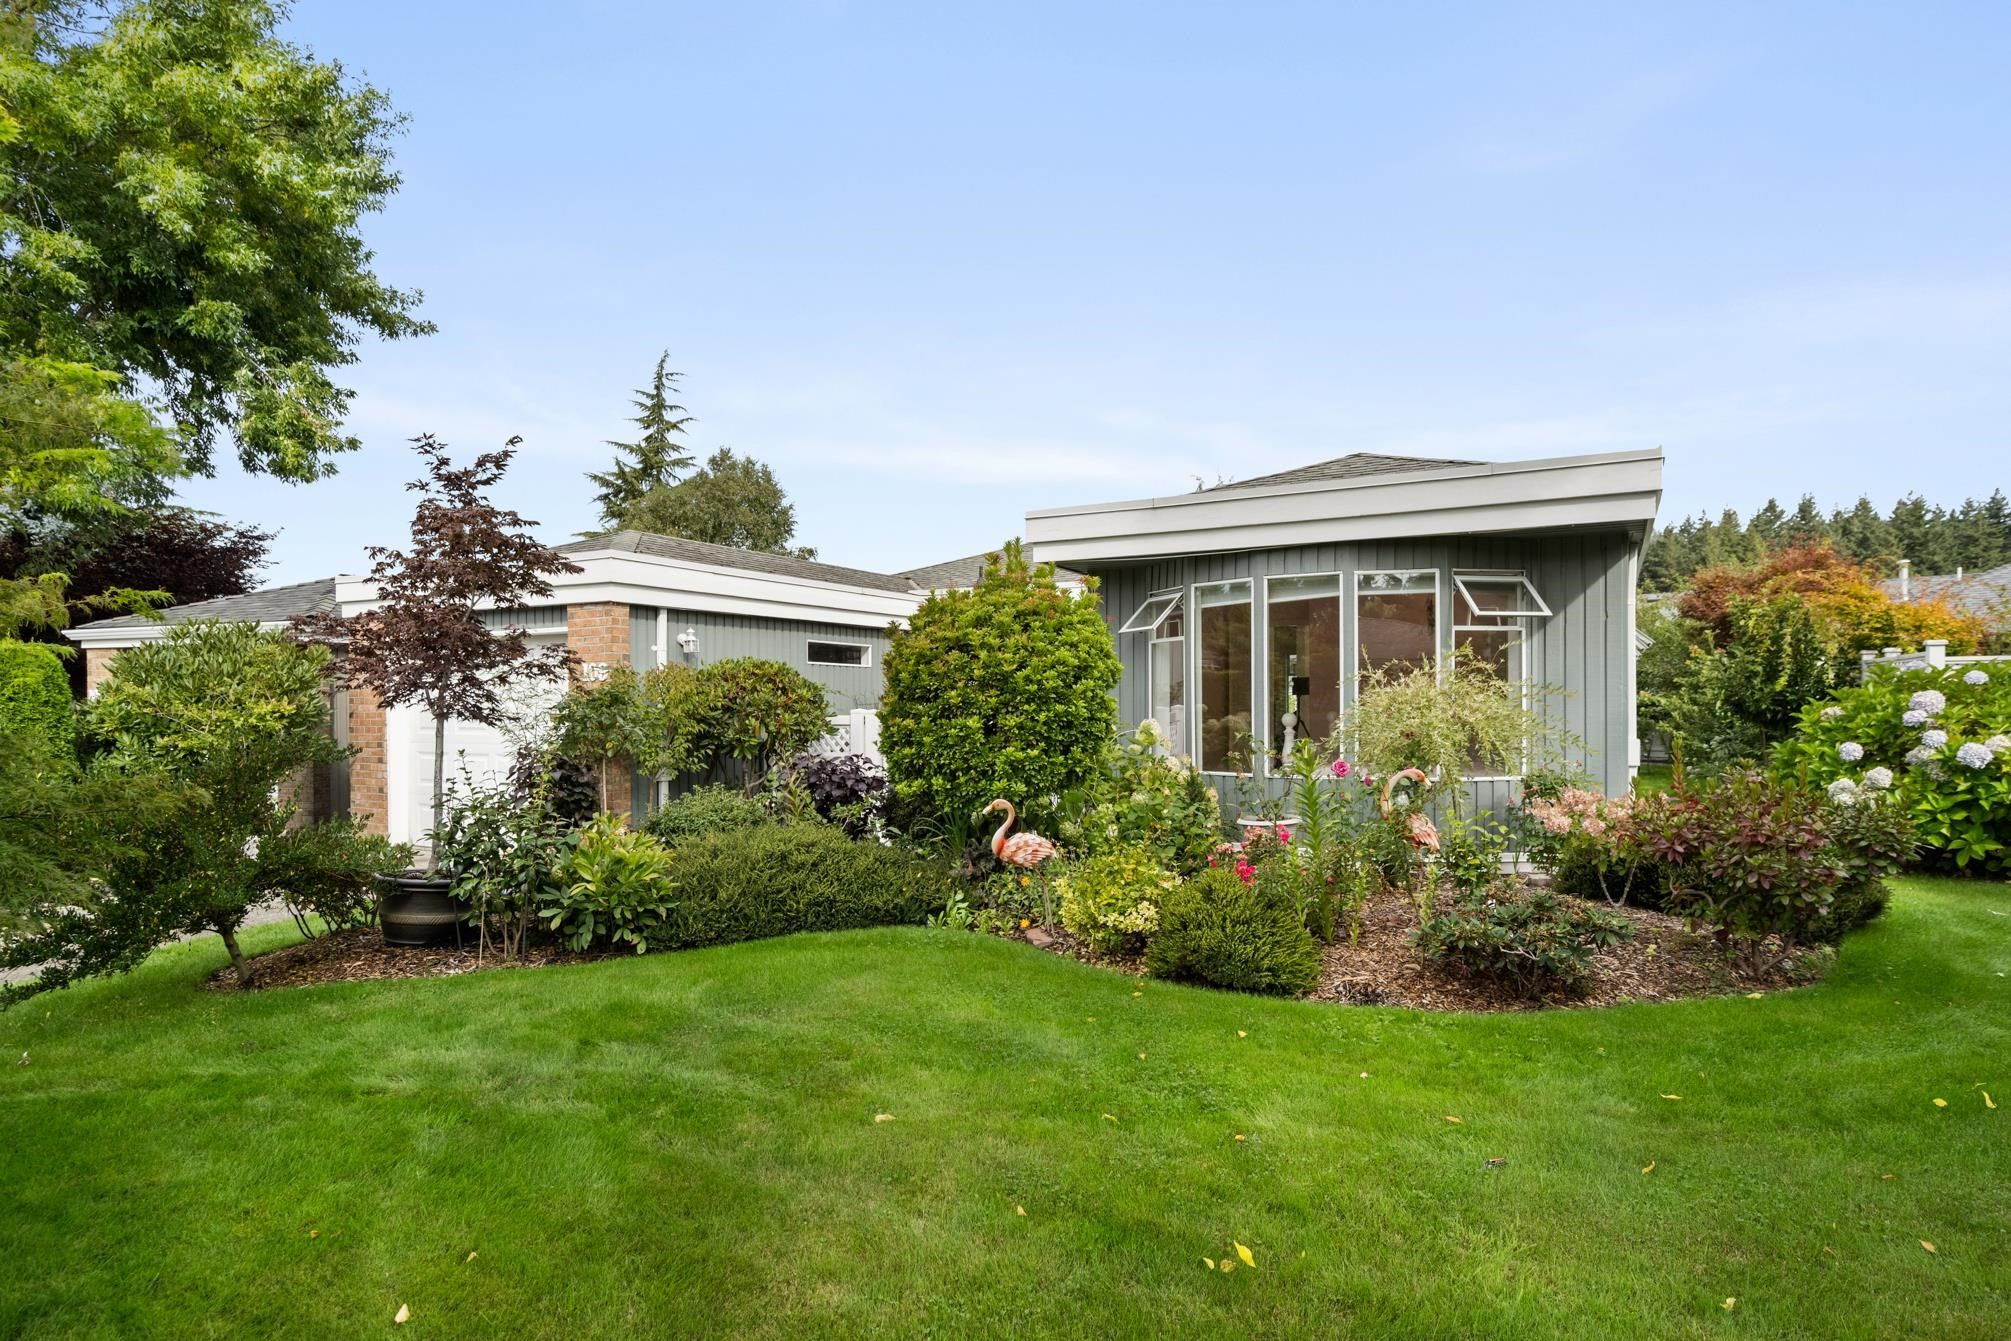 """Main Photo: 109 14271 18A Avenue in Surrey: Sunnyside Park Surrey Townhouse for sale in """"Ocean Bluff Court"""" (South Surrey White Rock)  : MLS®# R2617093"""